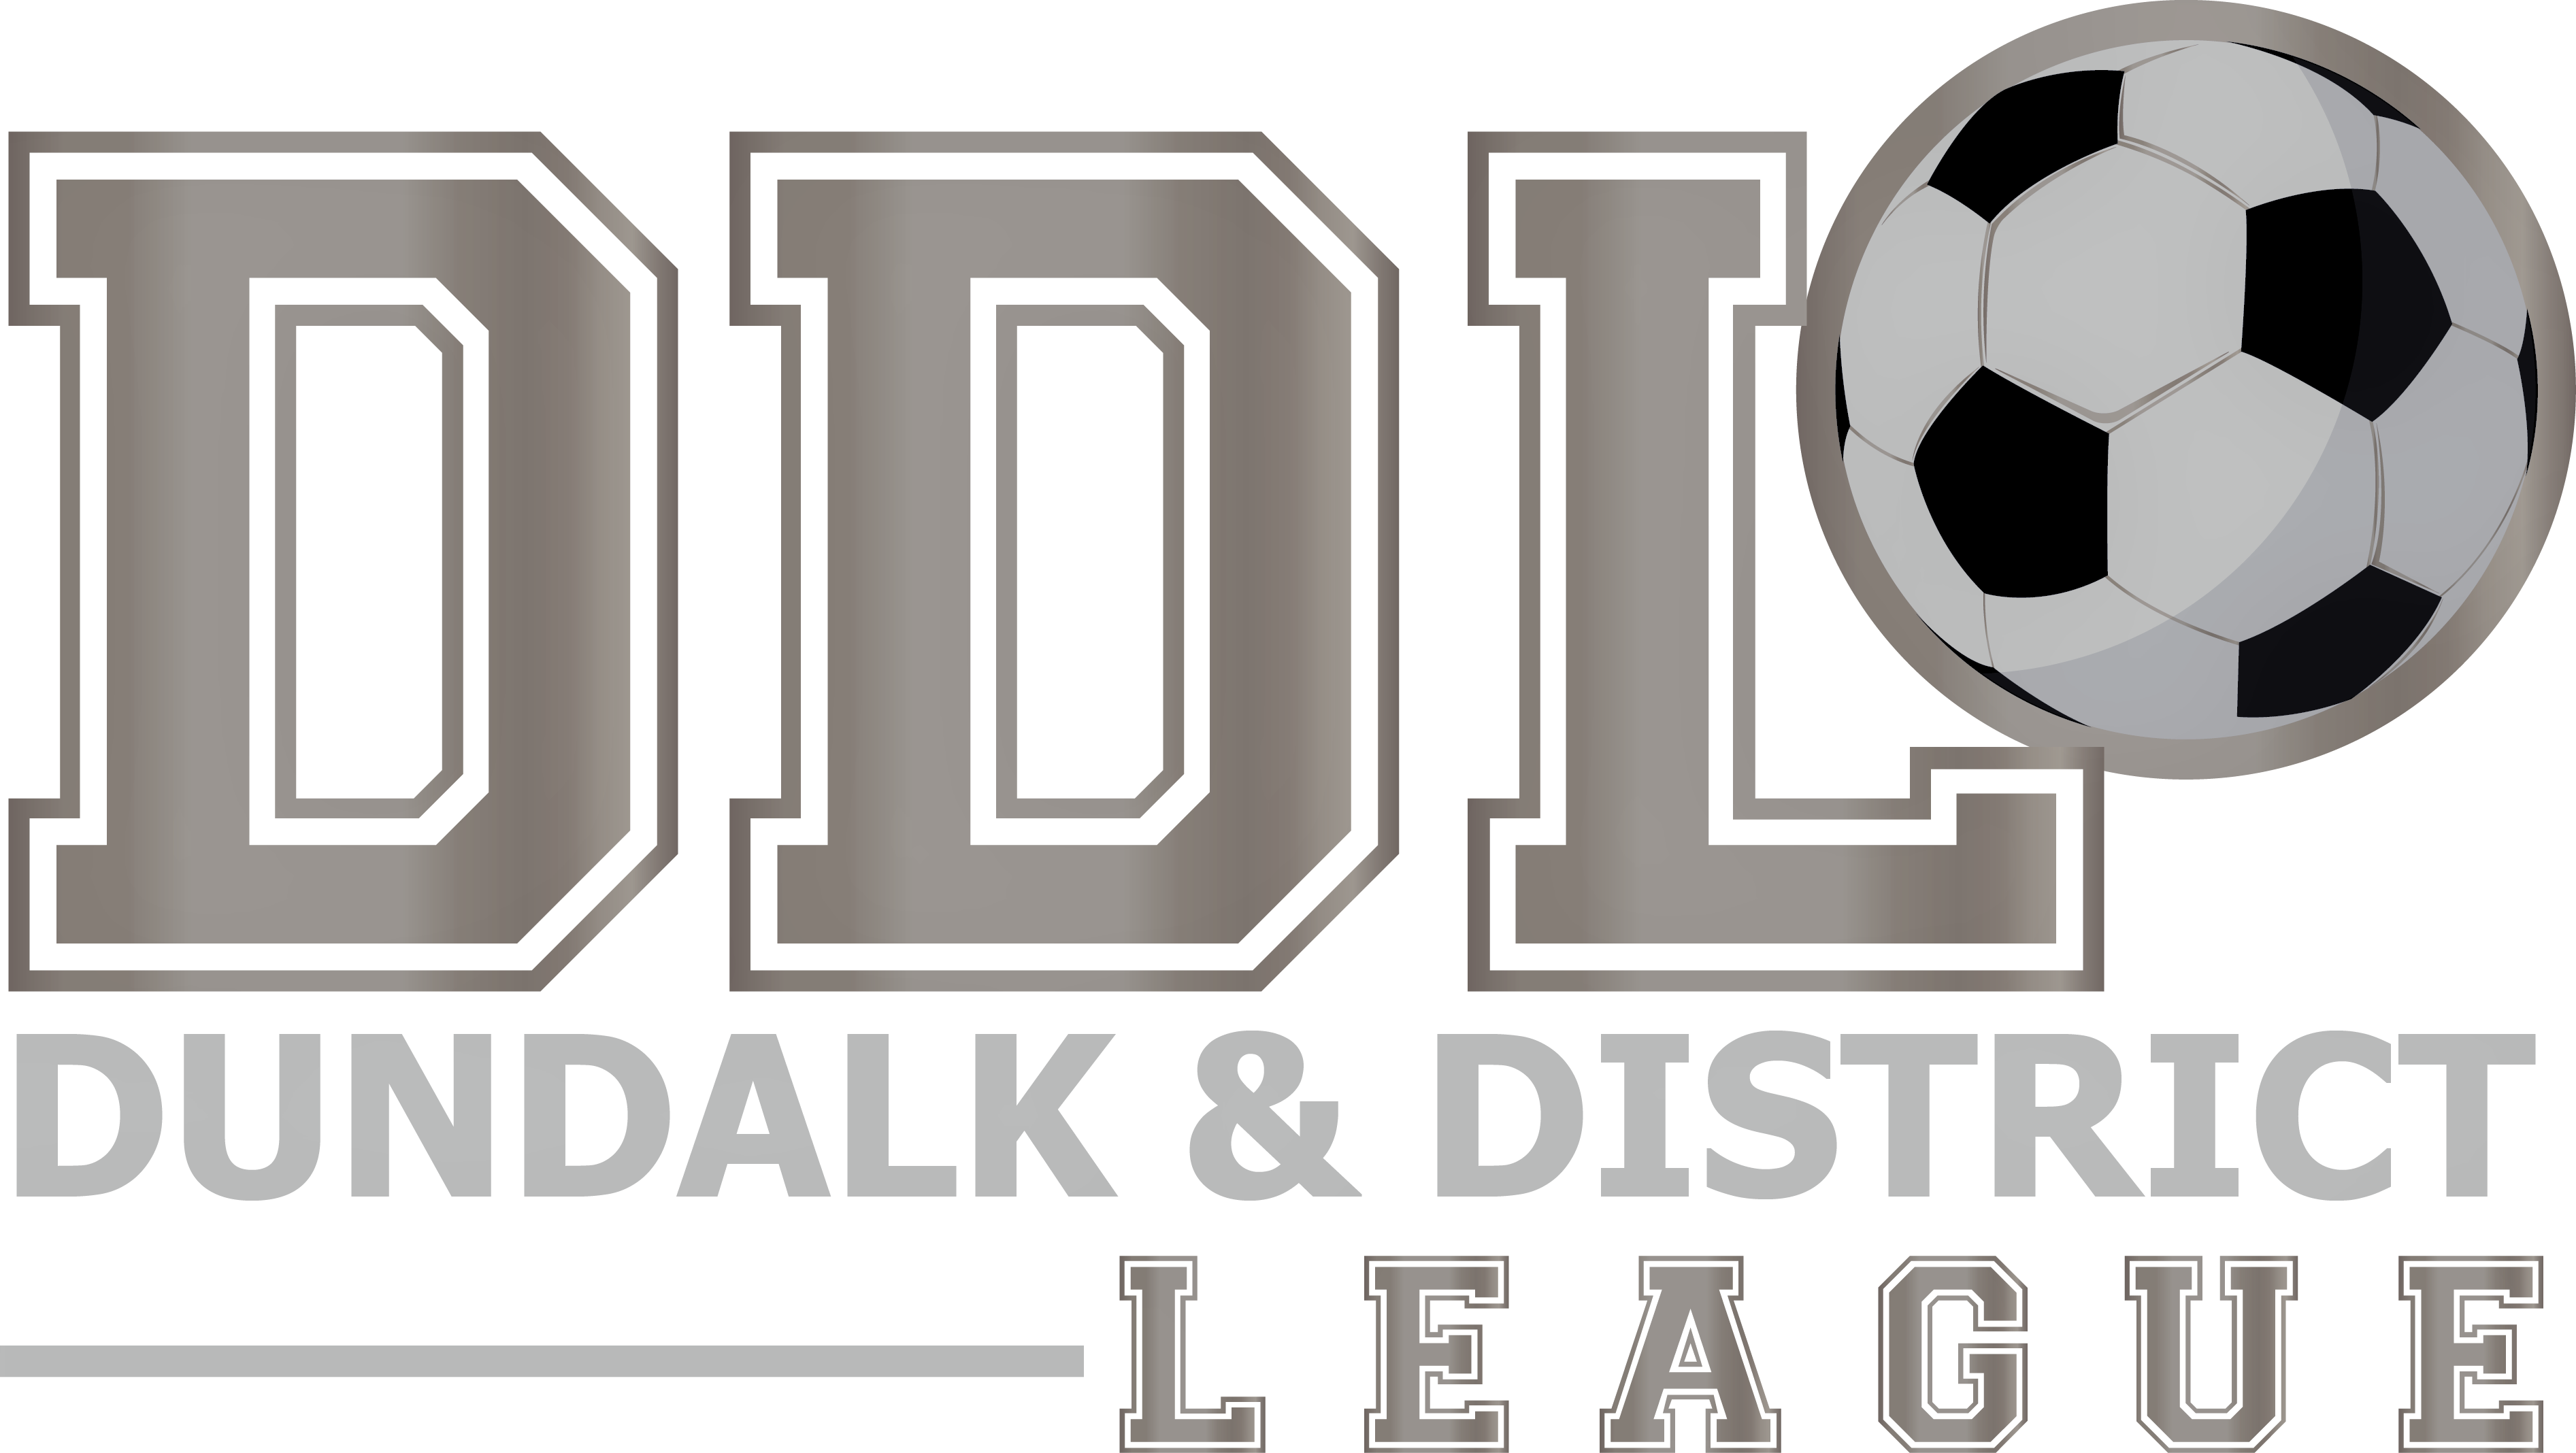 Dundalk & District League